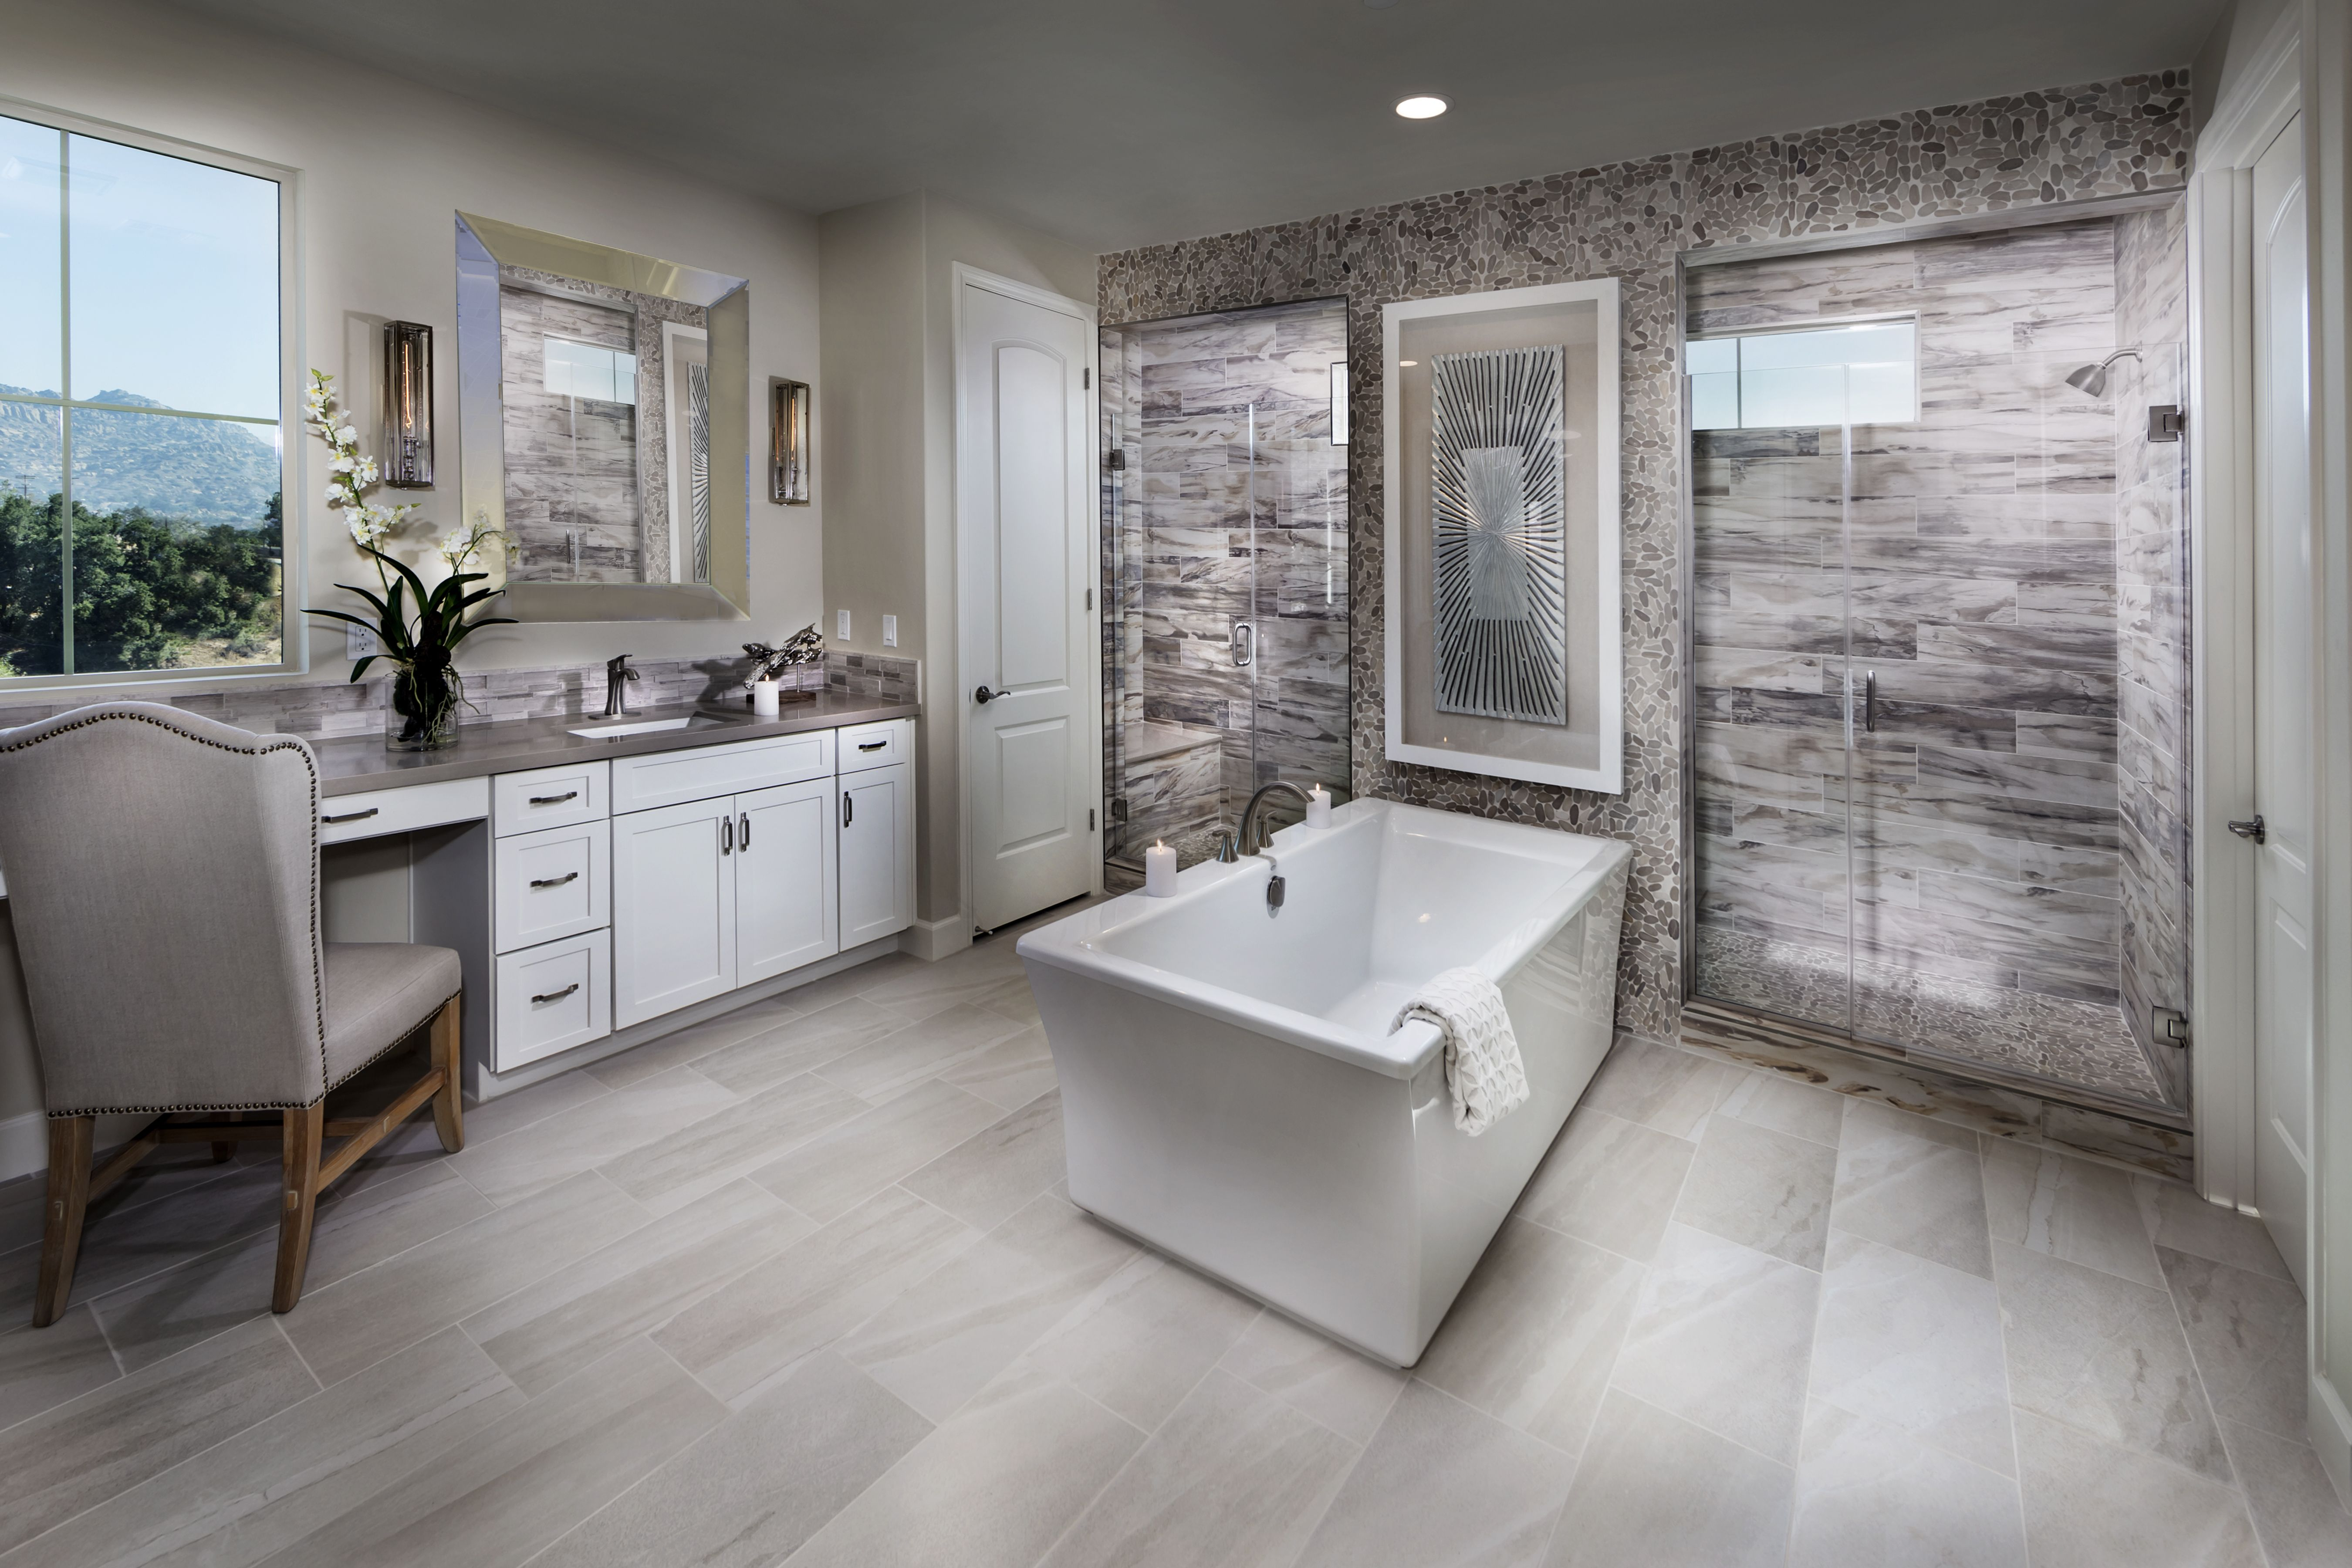 The Modern Tiles And Wood In This Sleek Gray Bathroom